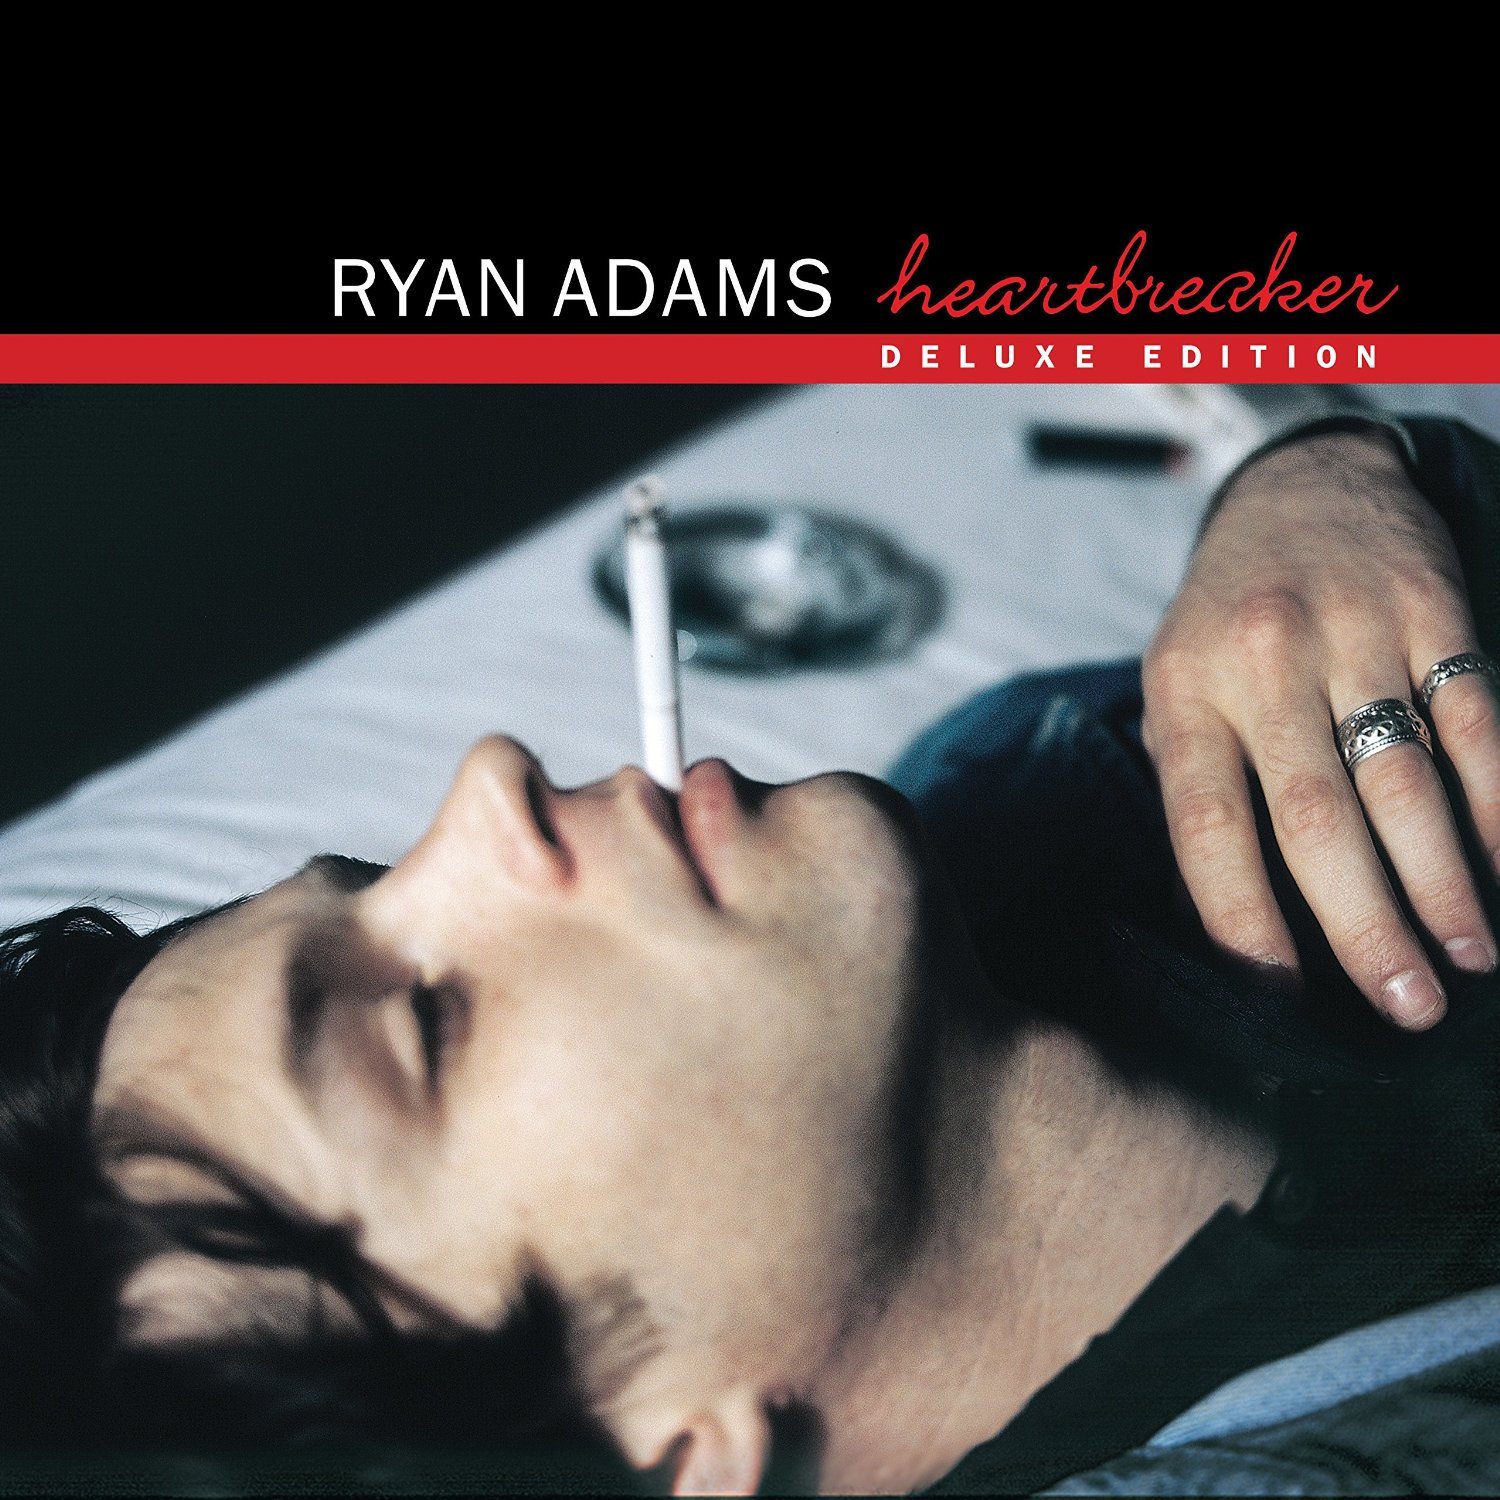 Ryan Adams: Heartbreaker (Deluxe Edition) [Album Review]